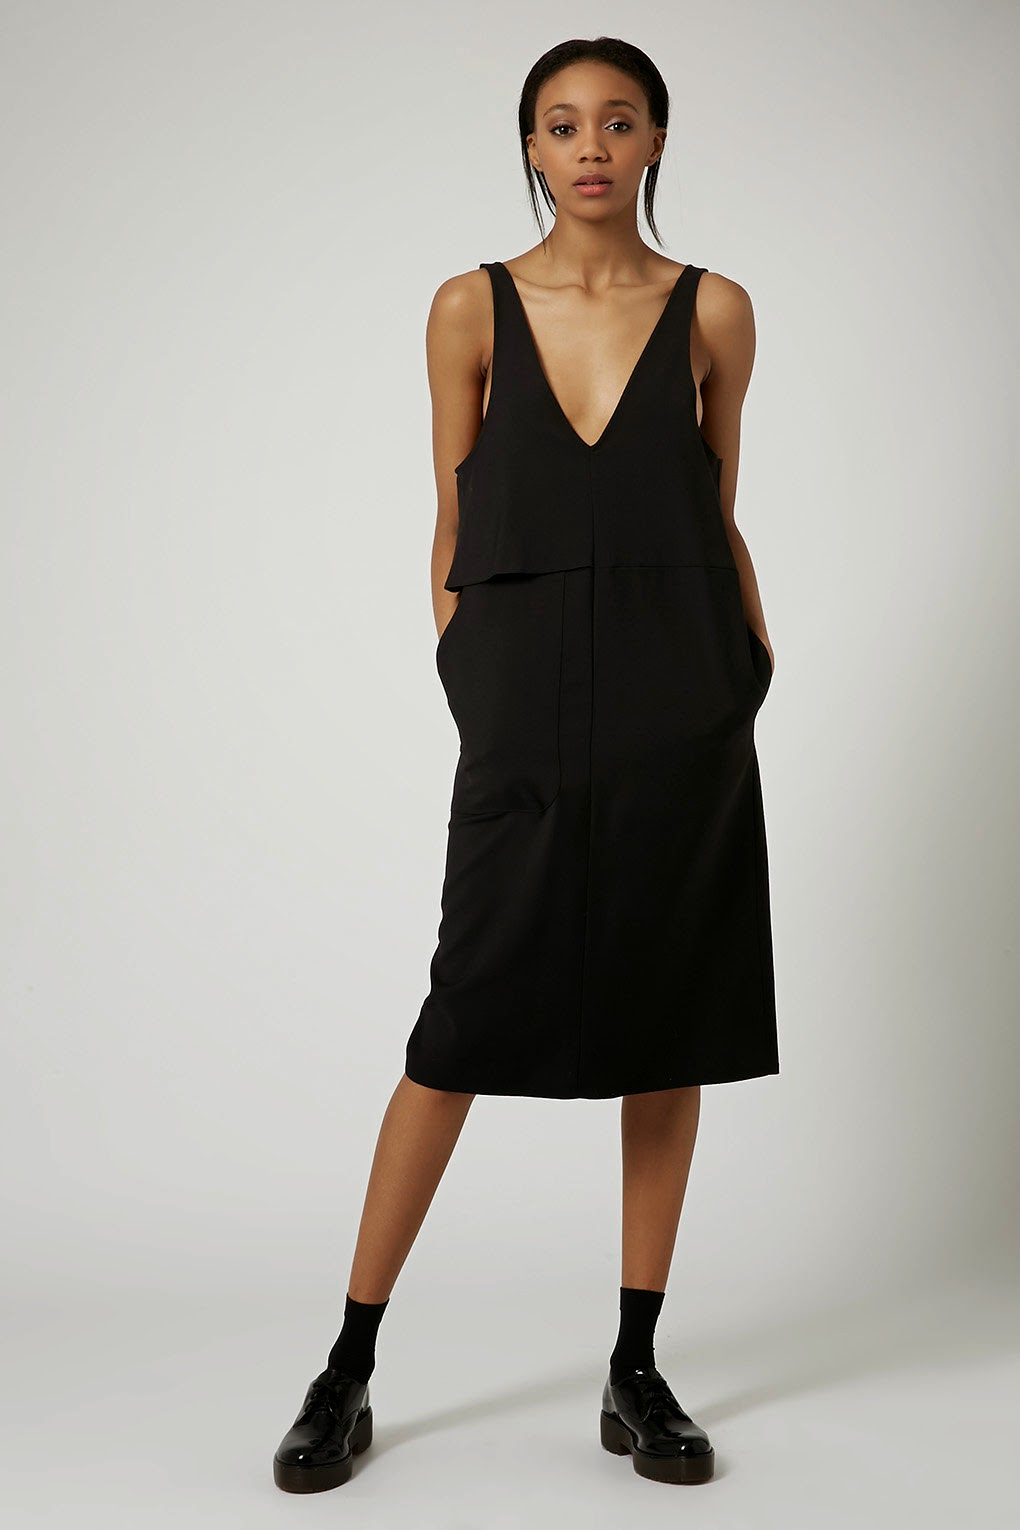 topshop boutique black  dress, v neck black dress 2015,